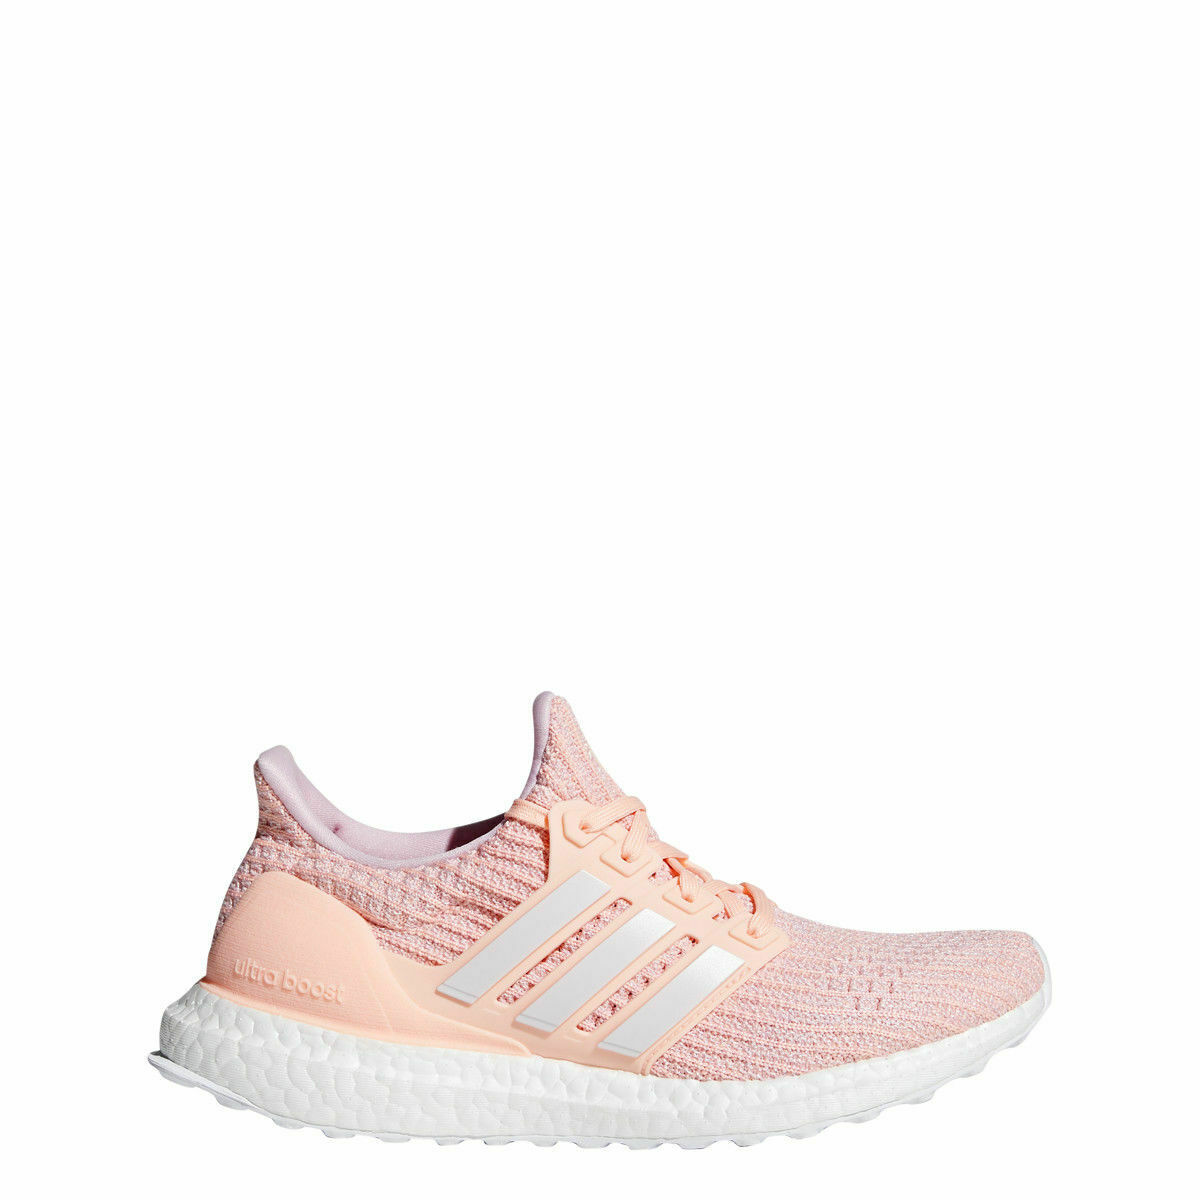 Adidas Women's Ultra Boost - - - NEW IN BOX - FREE SHIP - Pink   White - F36126 + bcd3e0